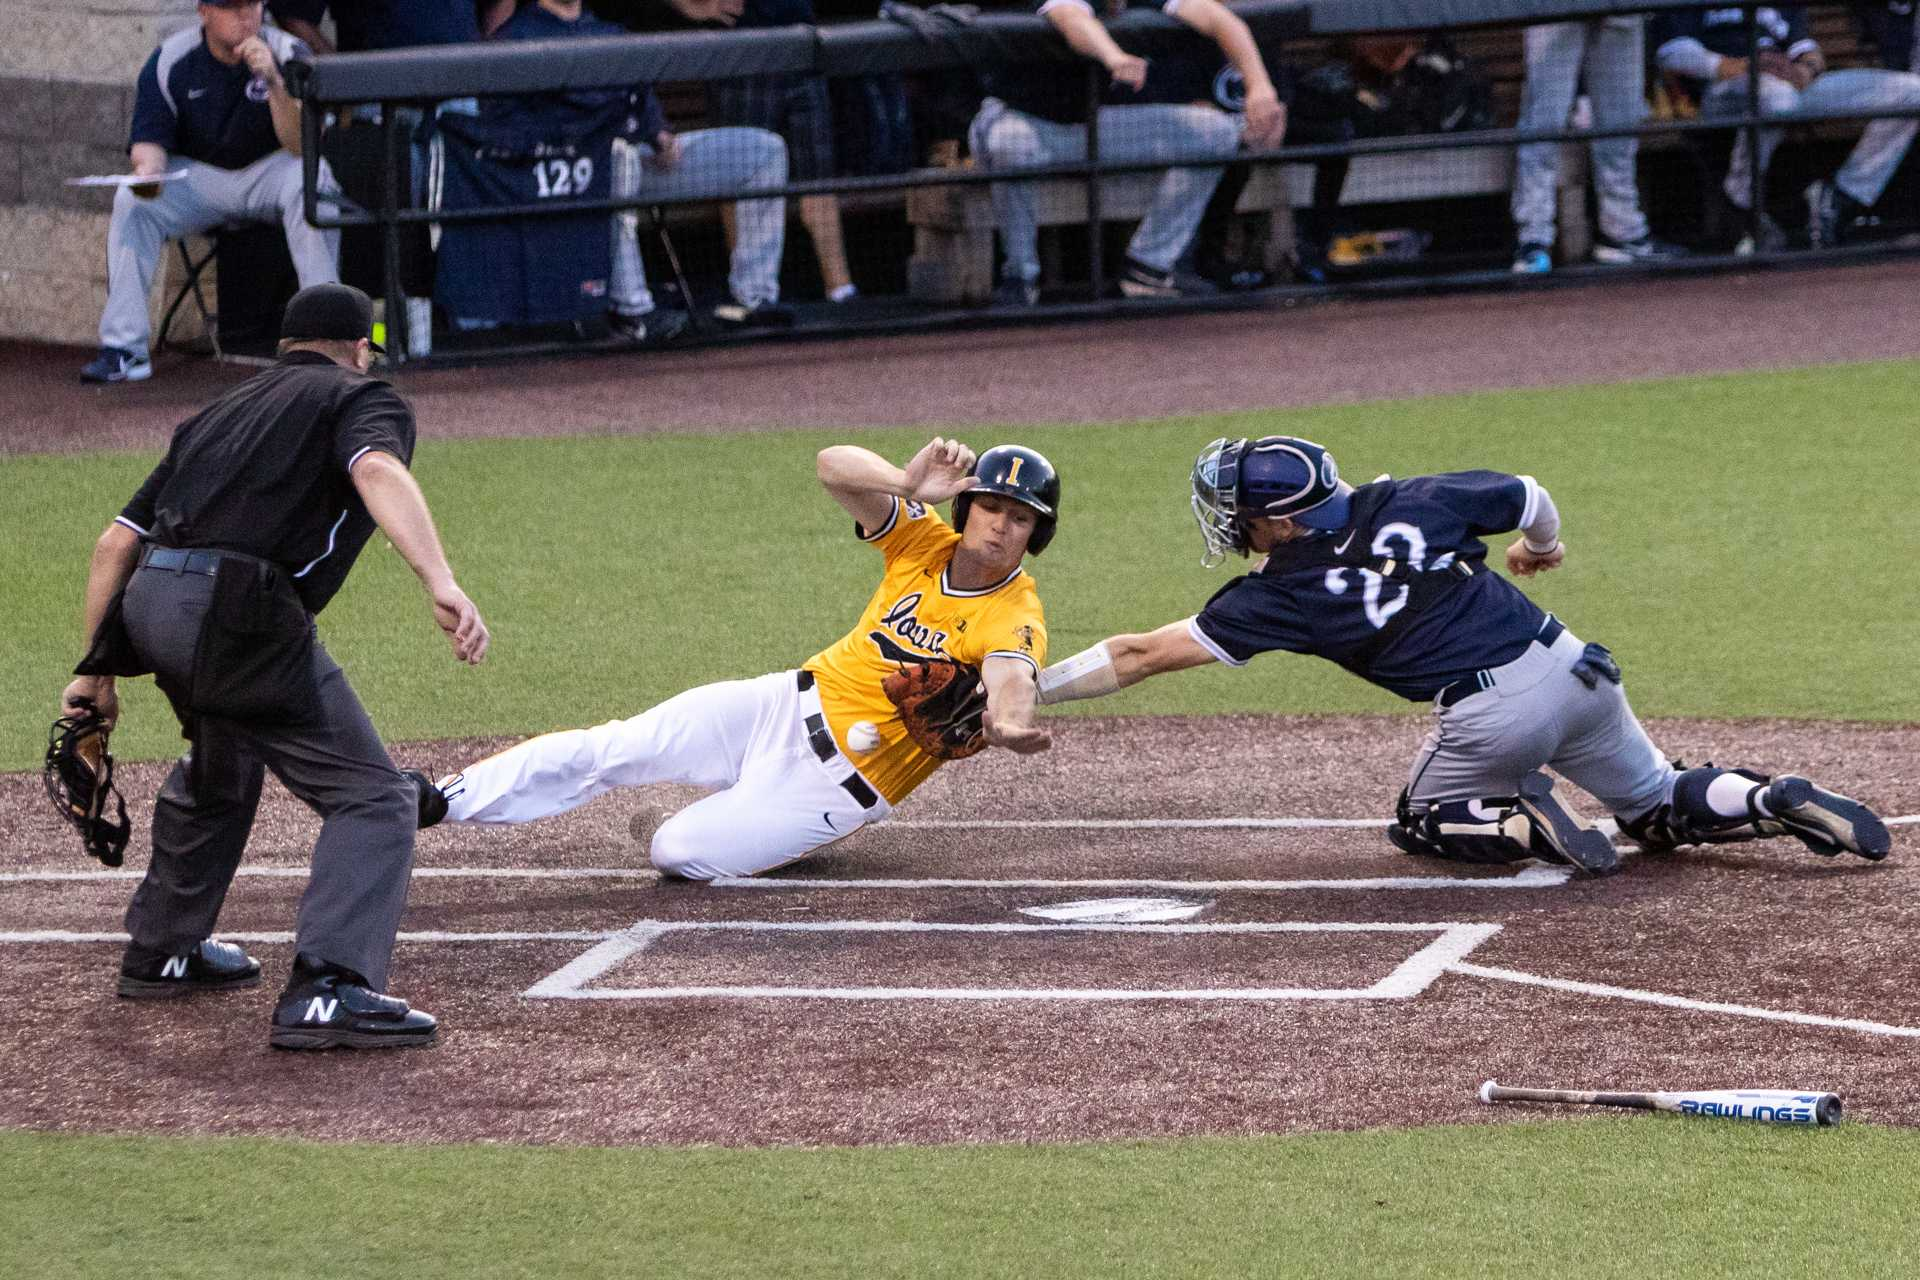 University of Iowa baseball player Kace Massner slides into home during a game against Penn State University on Saturday, May 19, 2018. The catcher dropped the ball allowing the runner to score and the Hawkeyes defeated the Nittany Lions 8-4. (David Harmantas/The Daily Iowan)